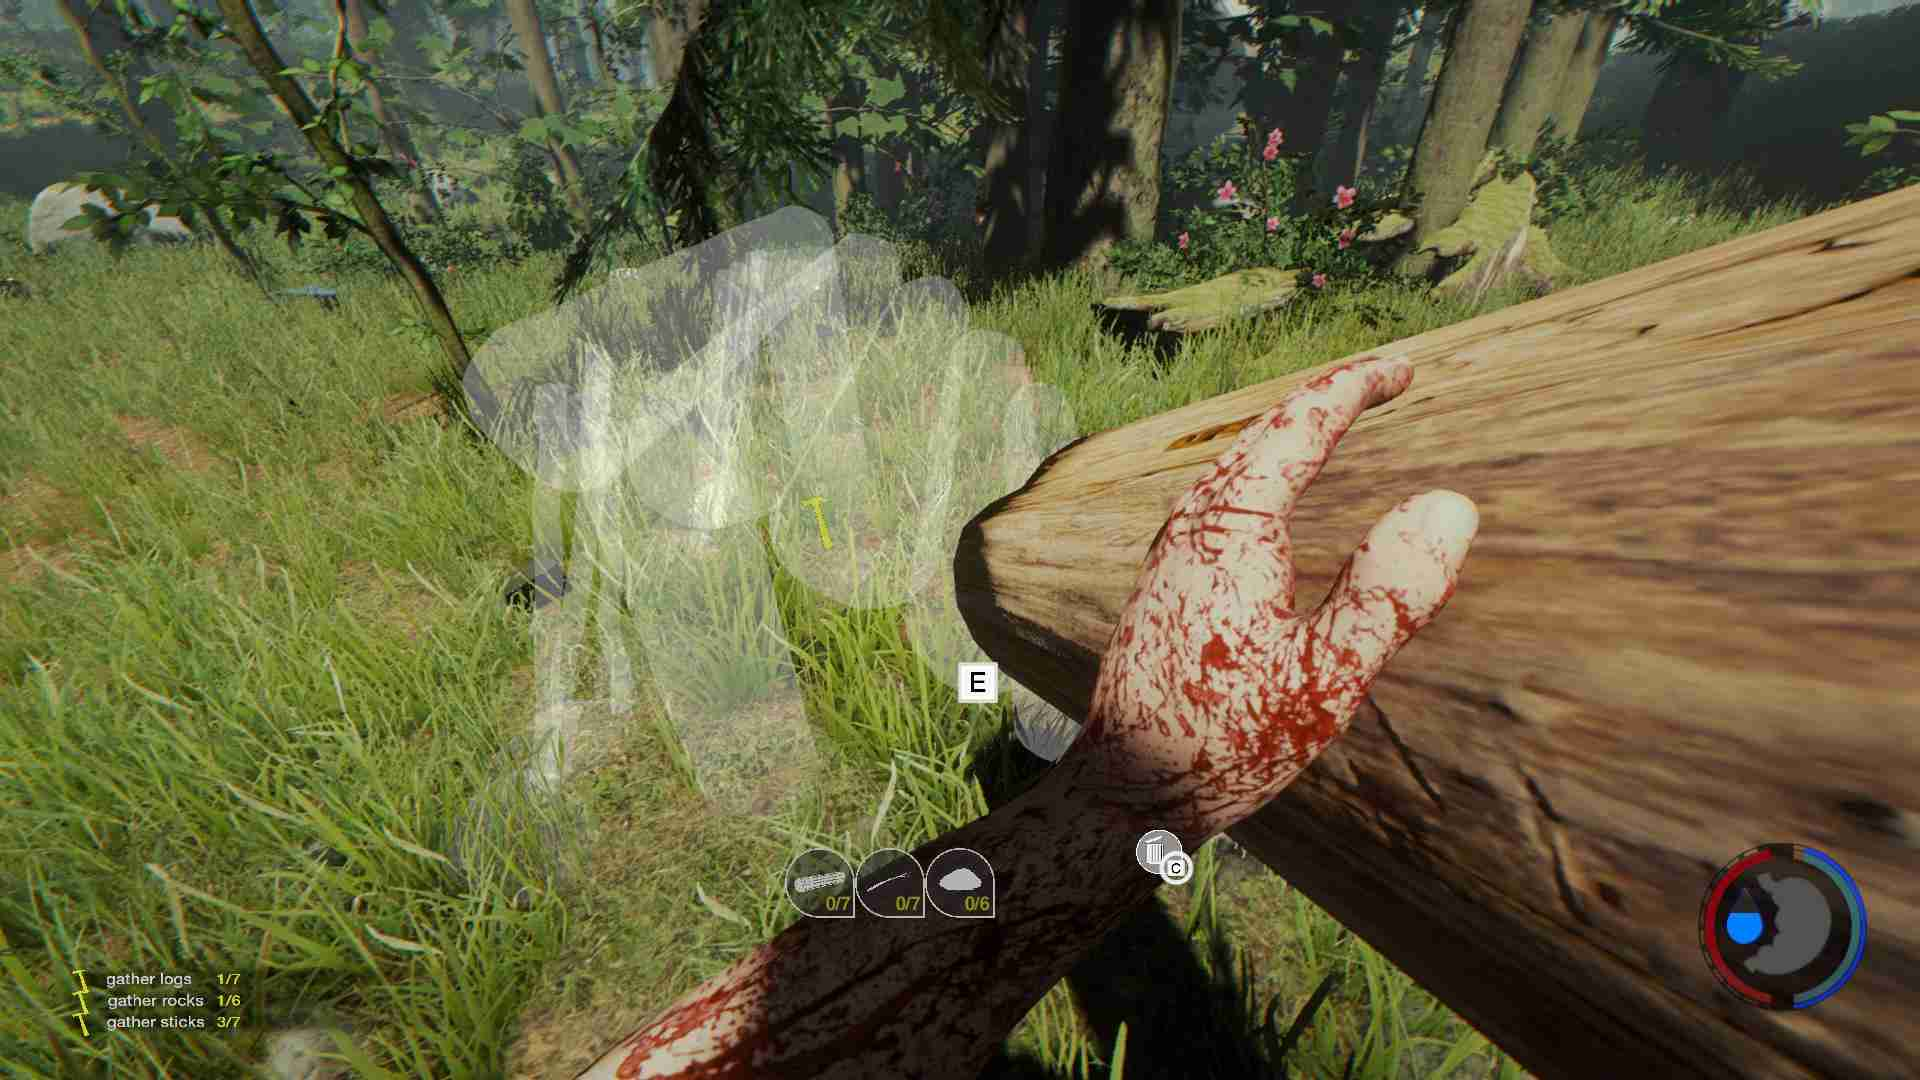 Spiele Wie The Forest